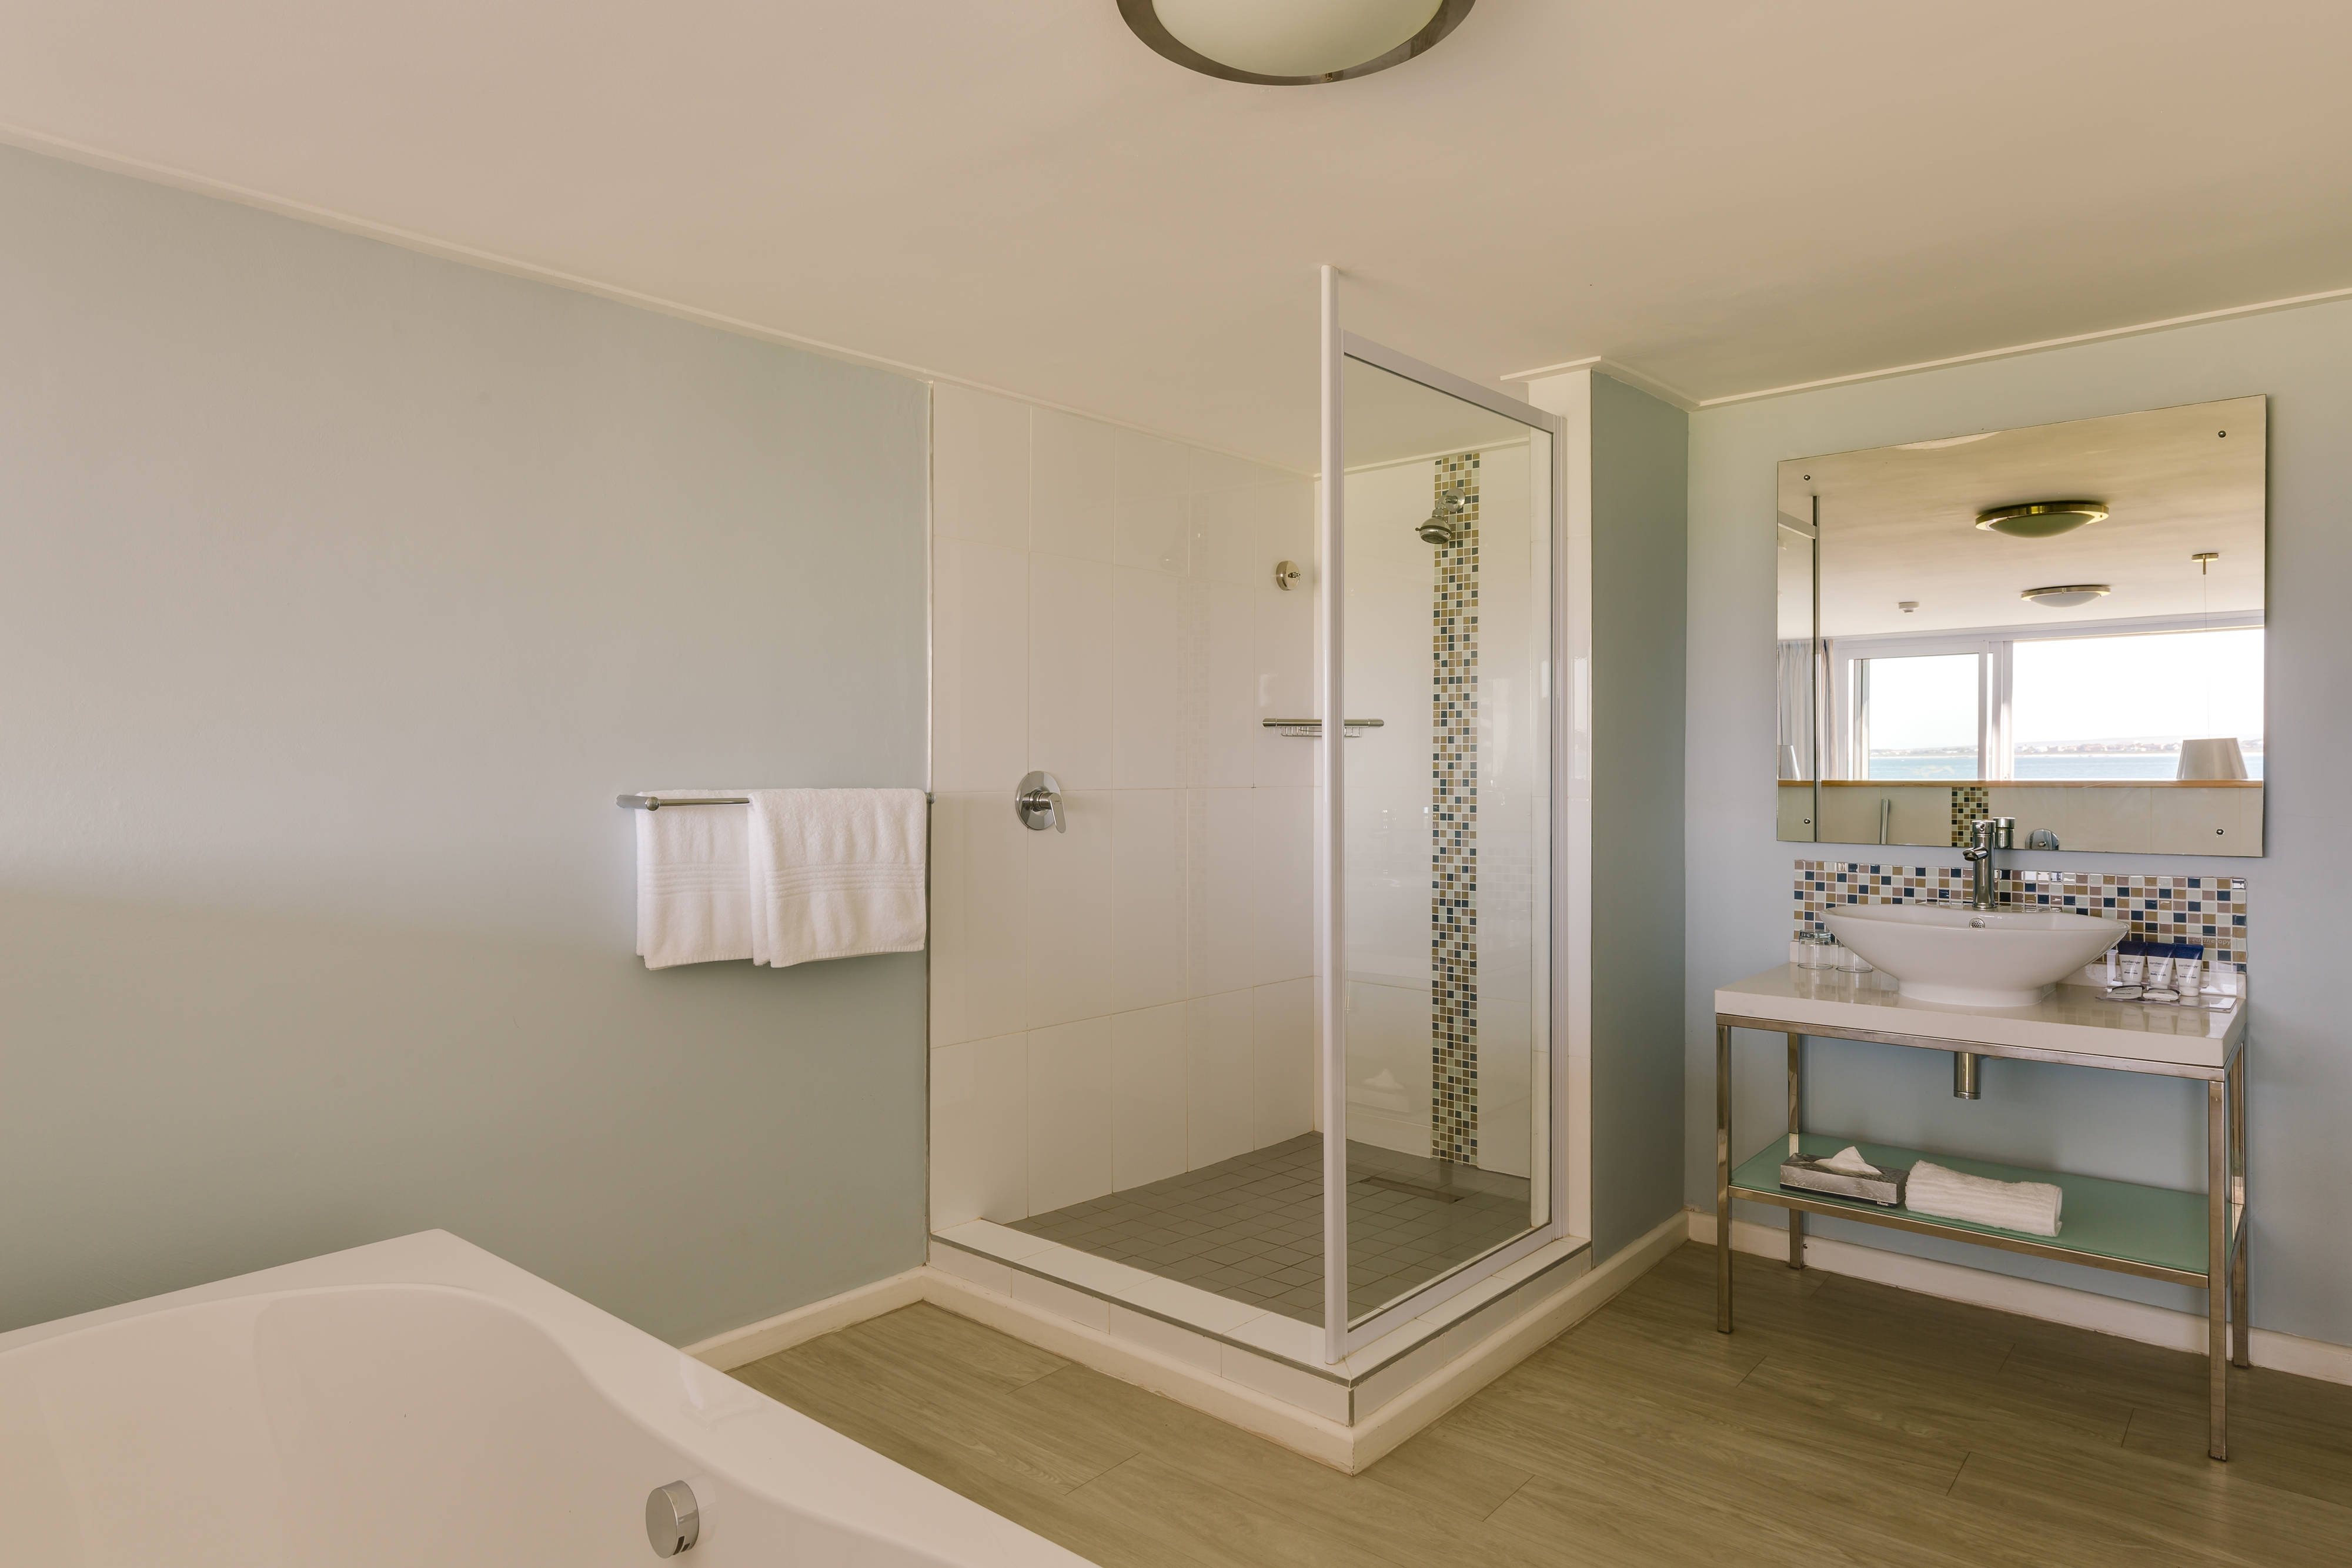 Suite Accommodation Bathroom Amenities